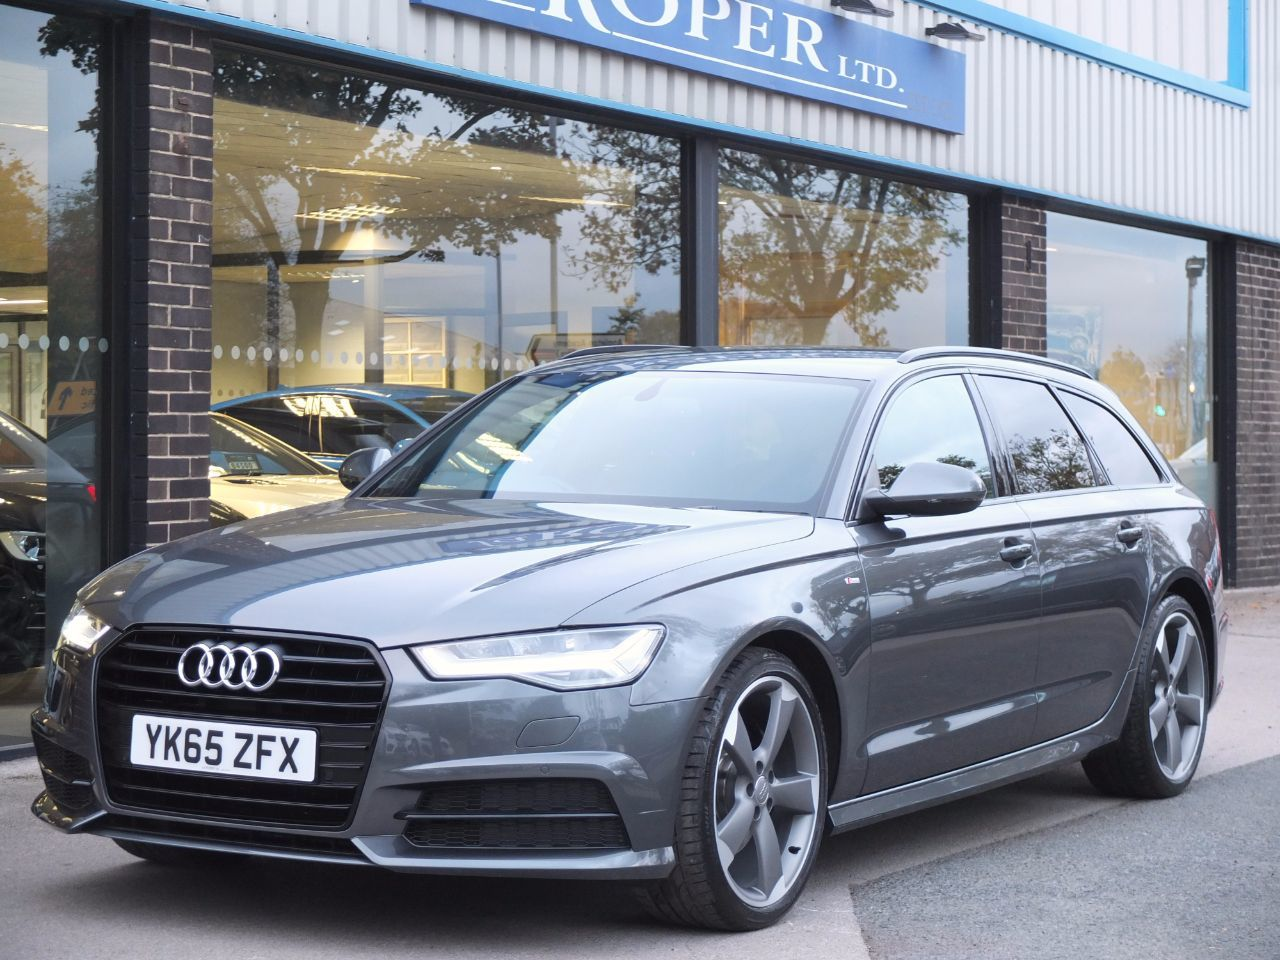 Audi A6 Avant 2.0 TDI Ultra Black Edition S tronic 190ps Estate Diesel Daytona Grey MetallicAudi A6 Avant 2.0 TDI Ultra Black Edition S tronic 190ps Estate Diesel Daytona Grey Metallic at fa Roper Ltd Bradford